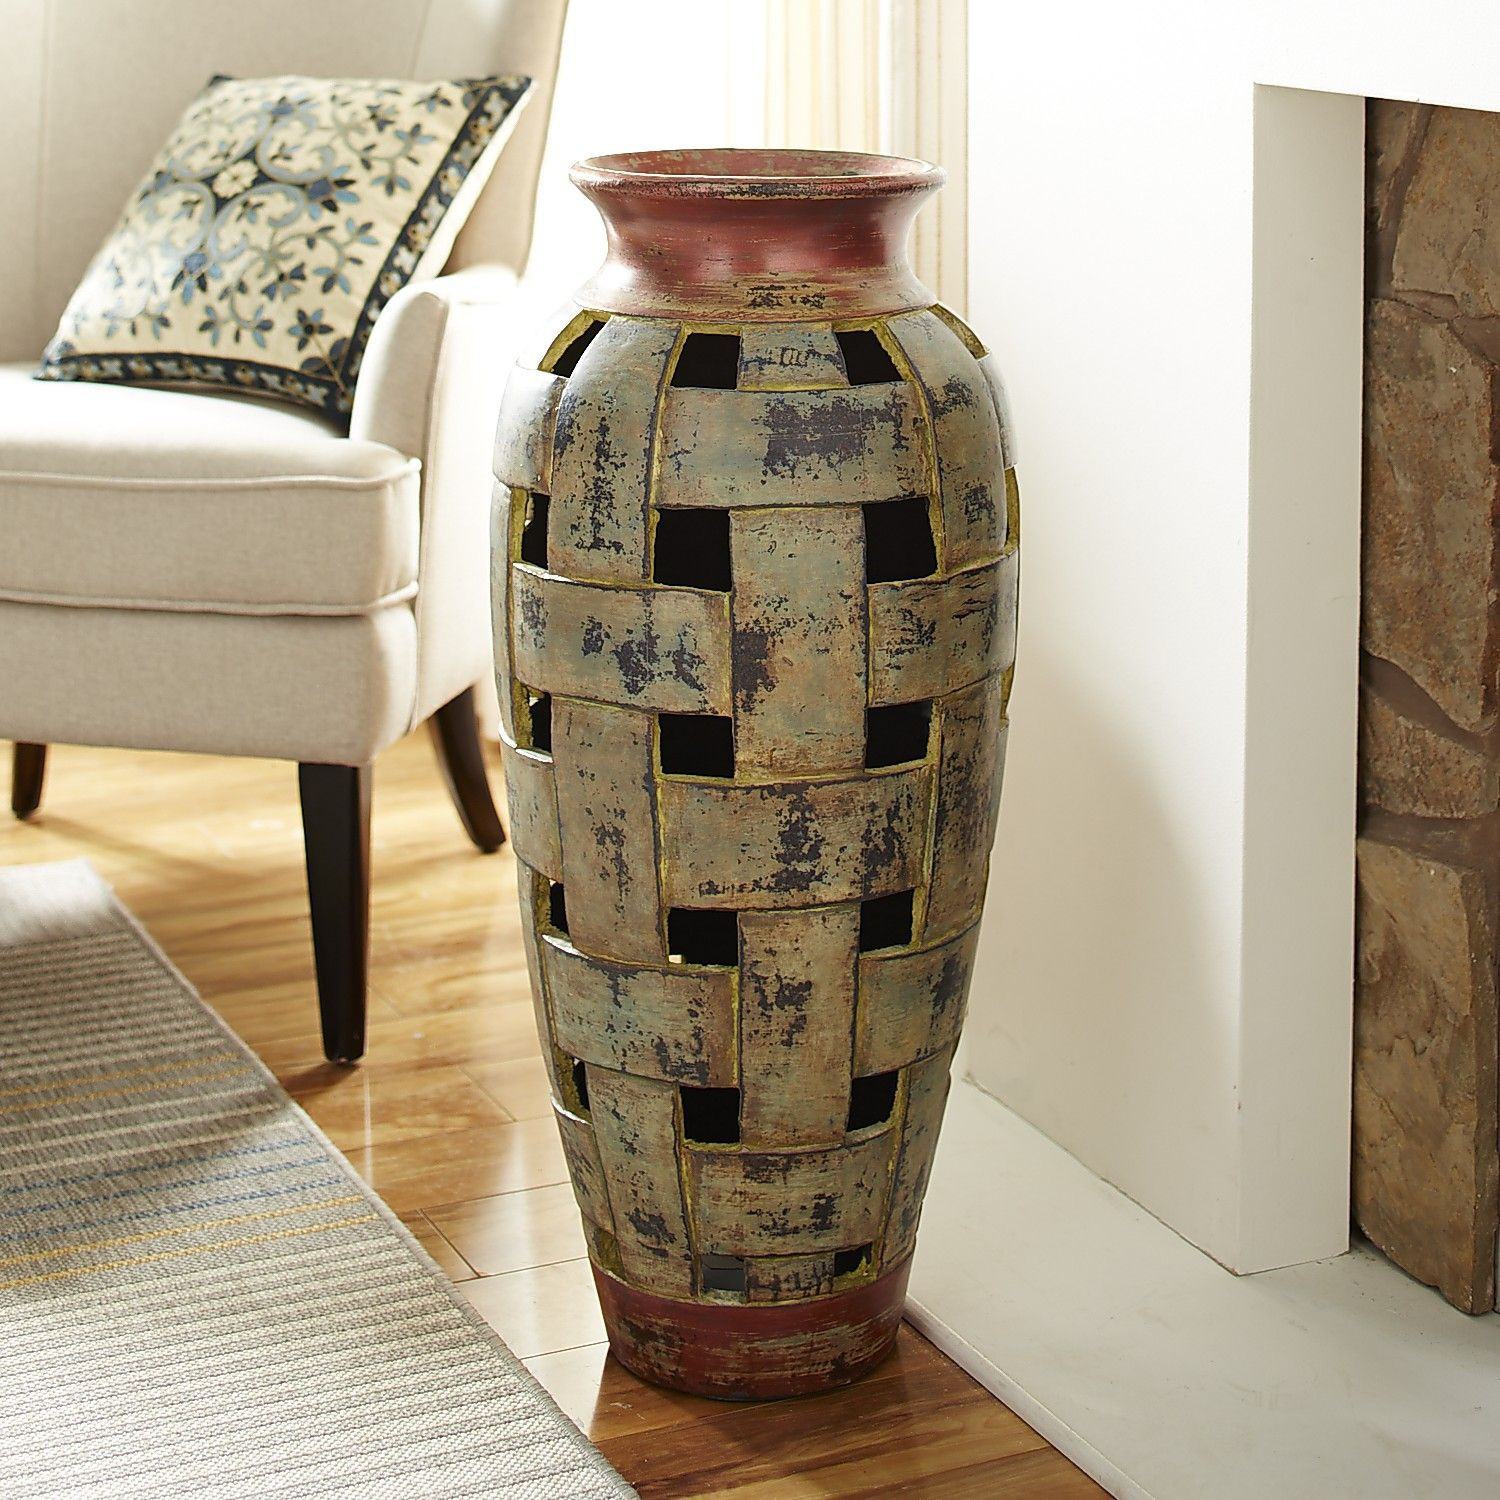 pier one vases of terracotta open weave floor vase products pinterest open weave in terracotta open weave floor vase green